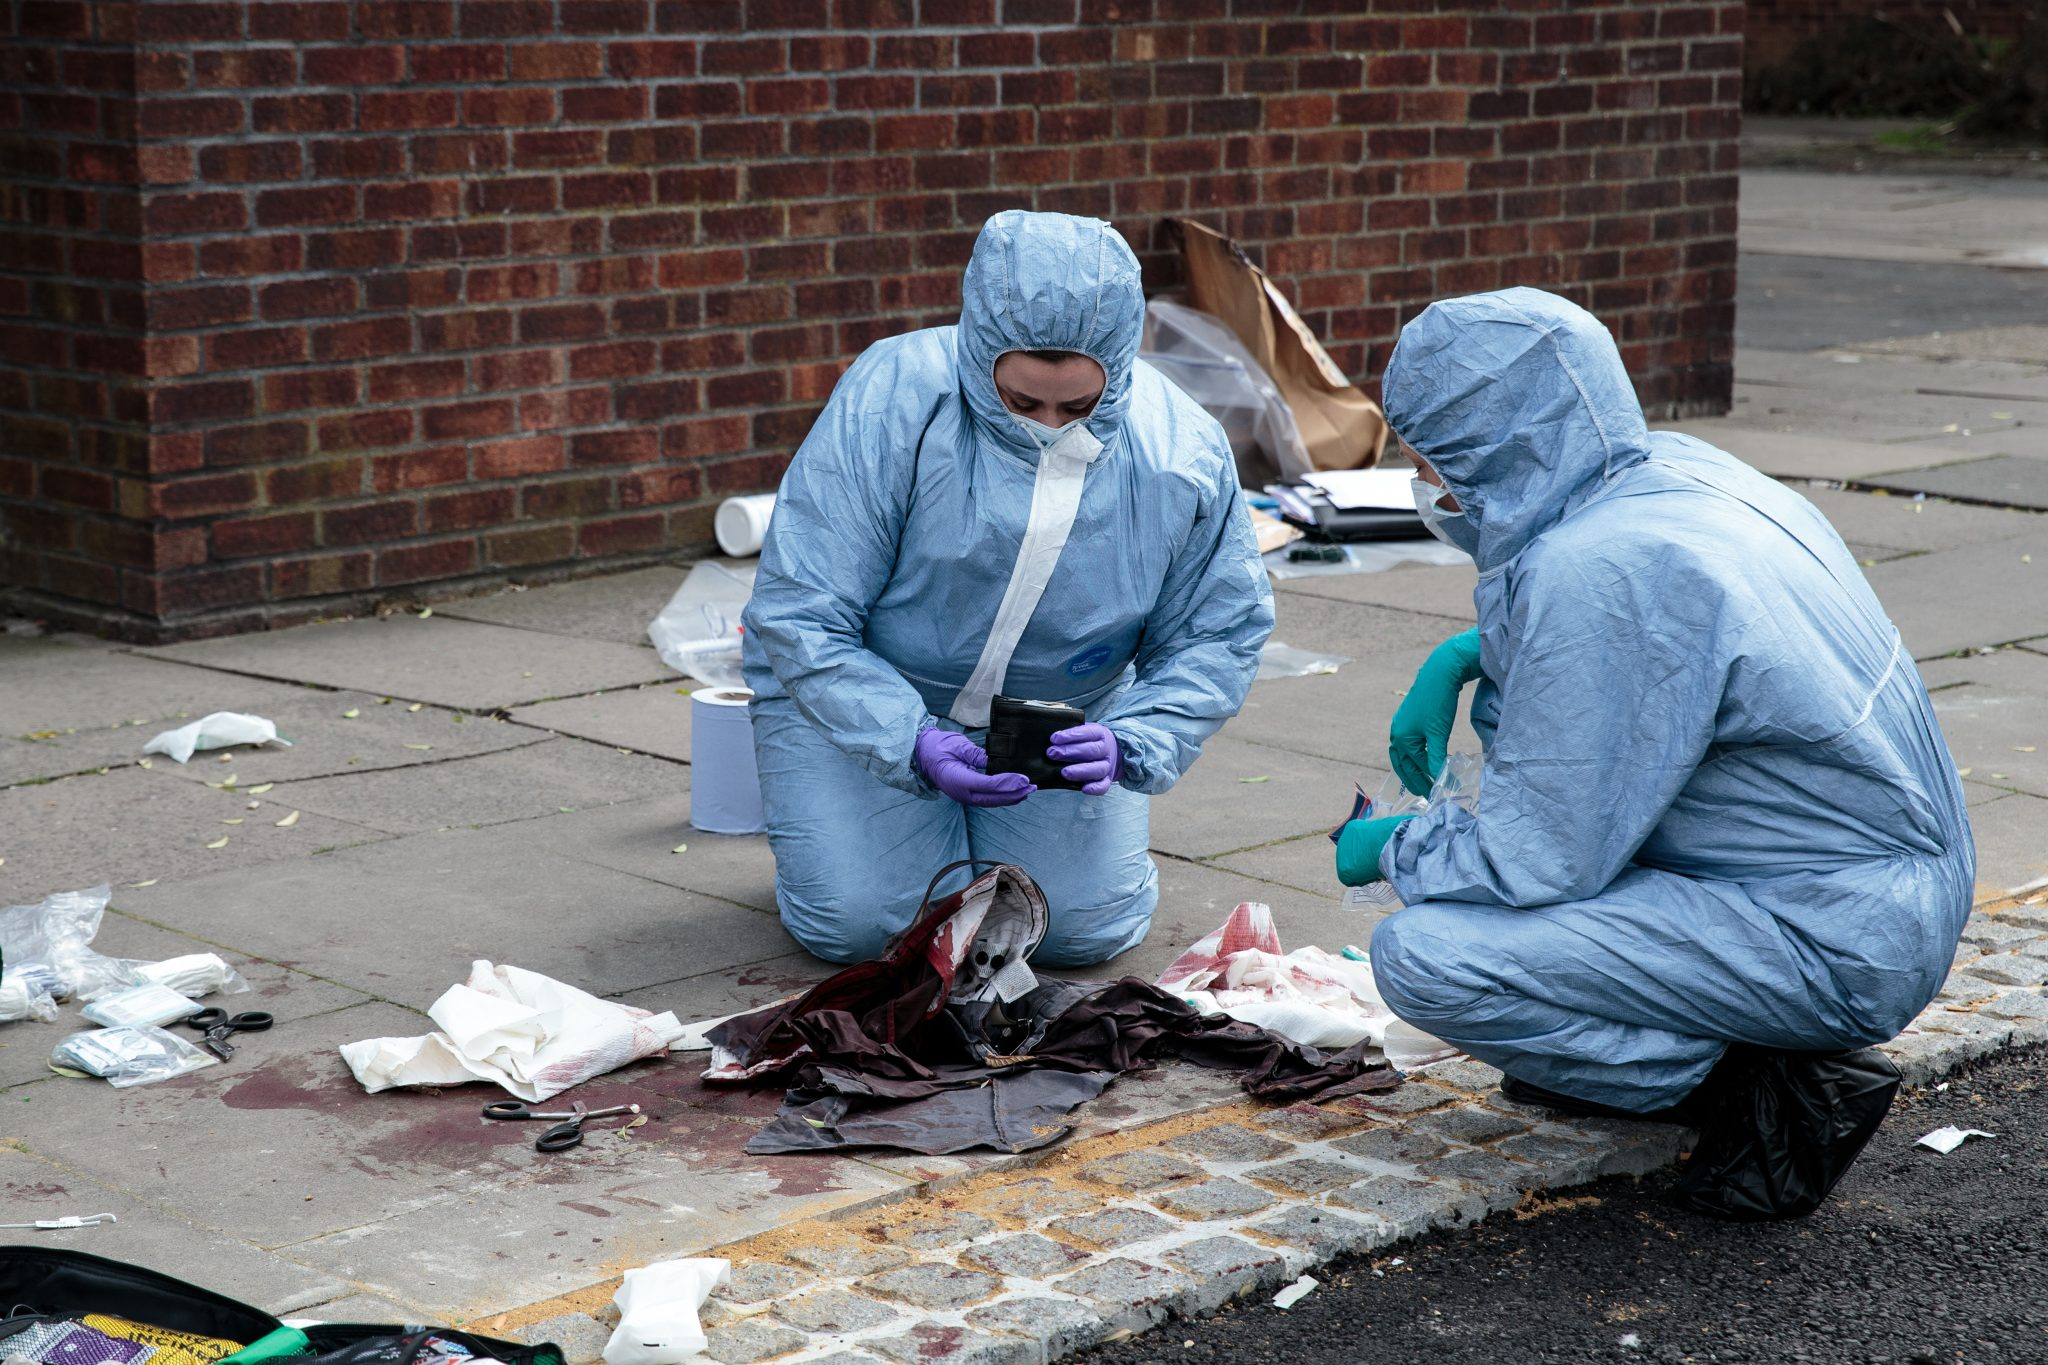 Forensic officers from the Metropolitan Police attend the scene of a stabbing in London.